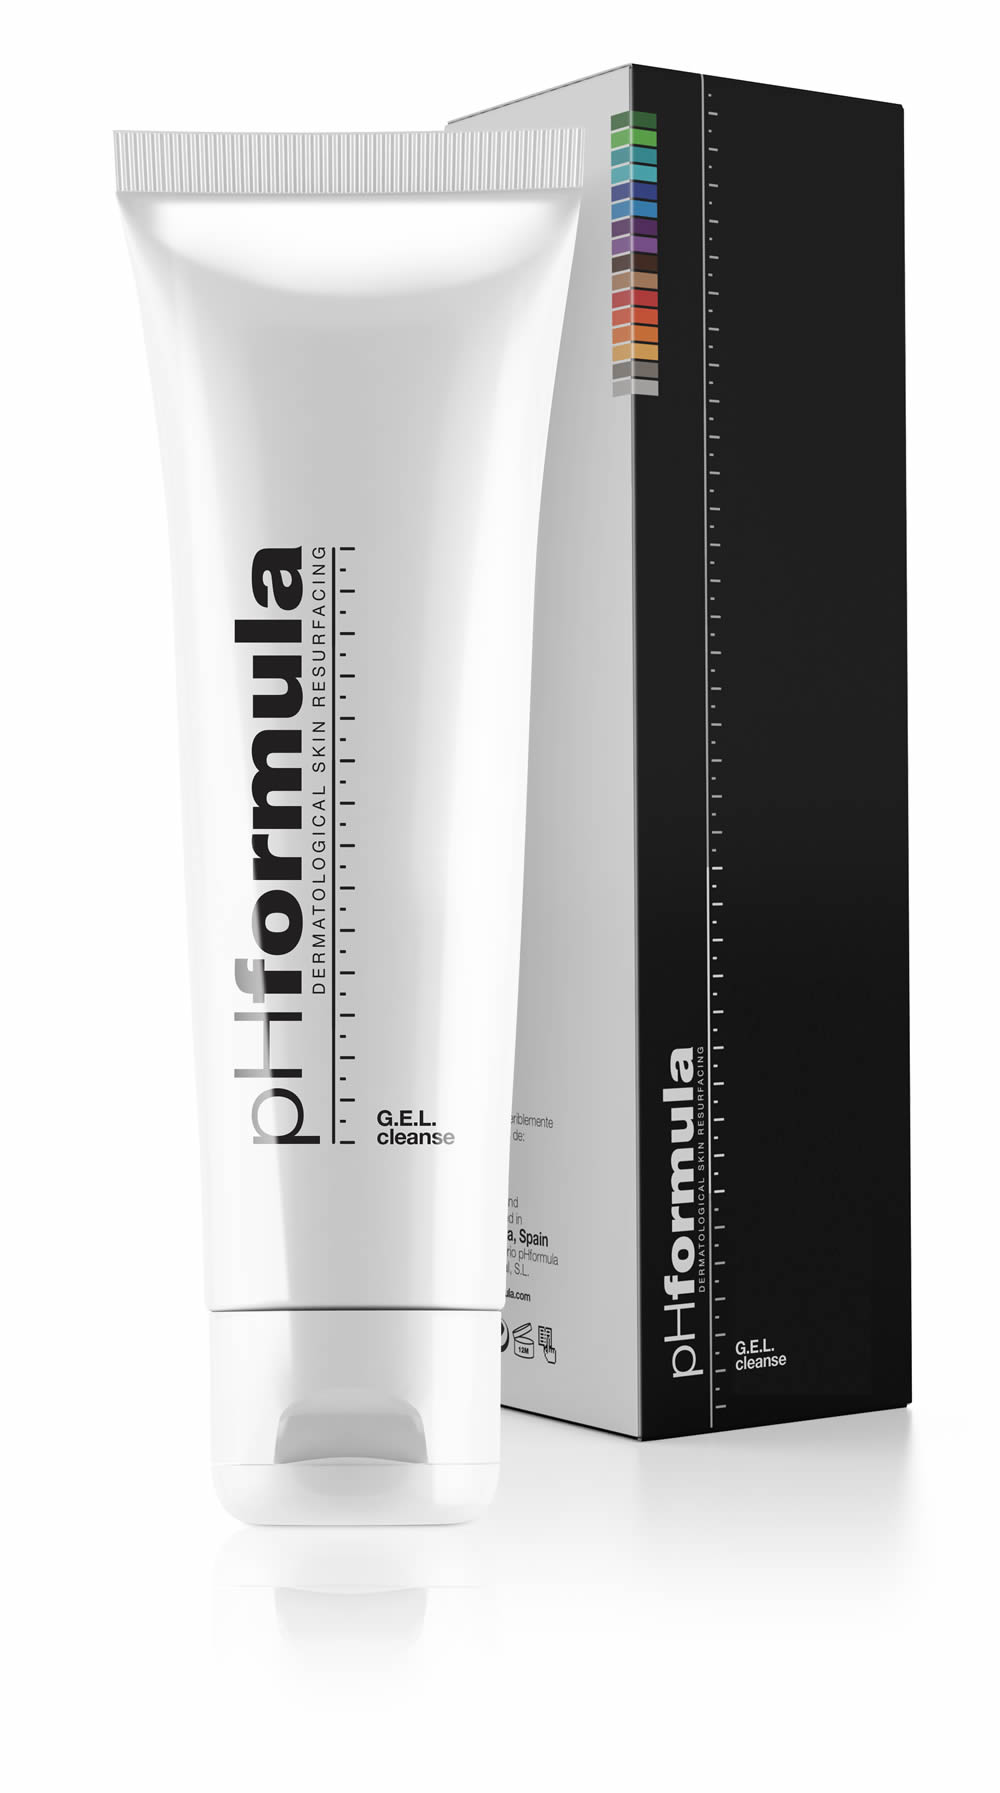 pHformula gel cleanse